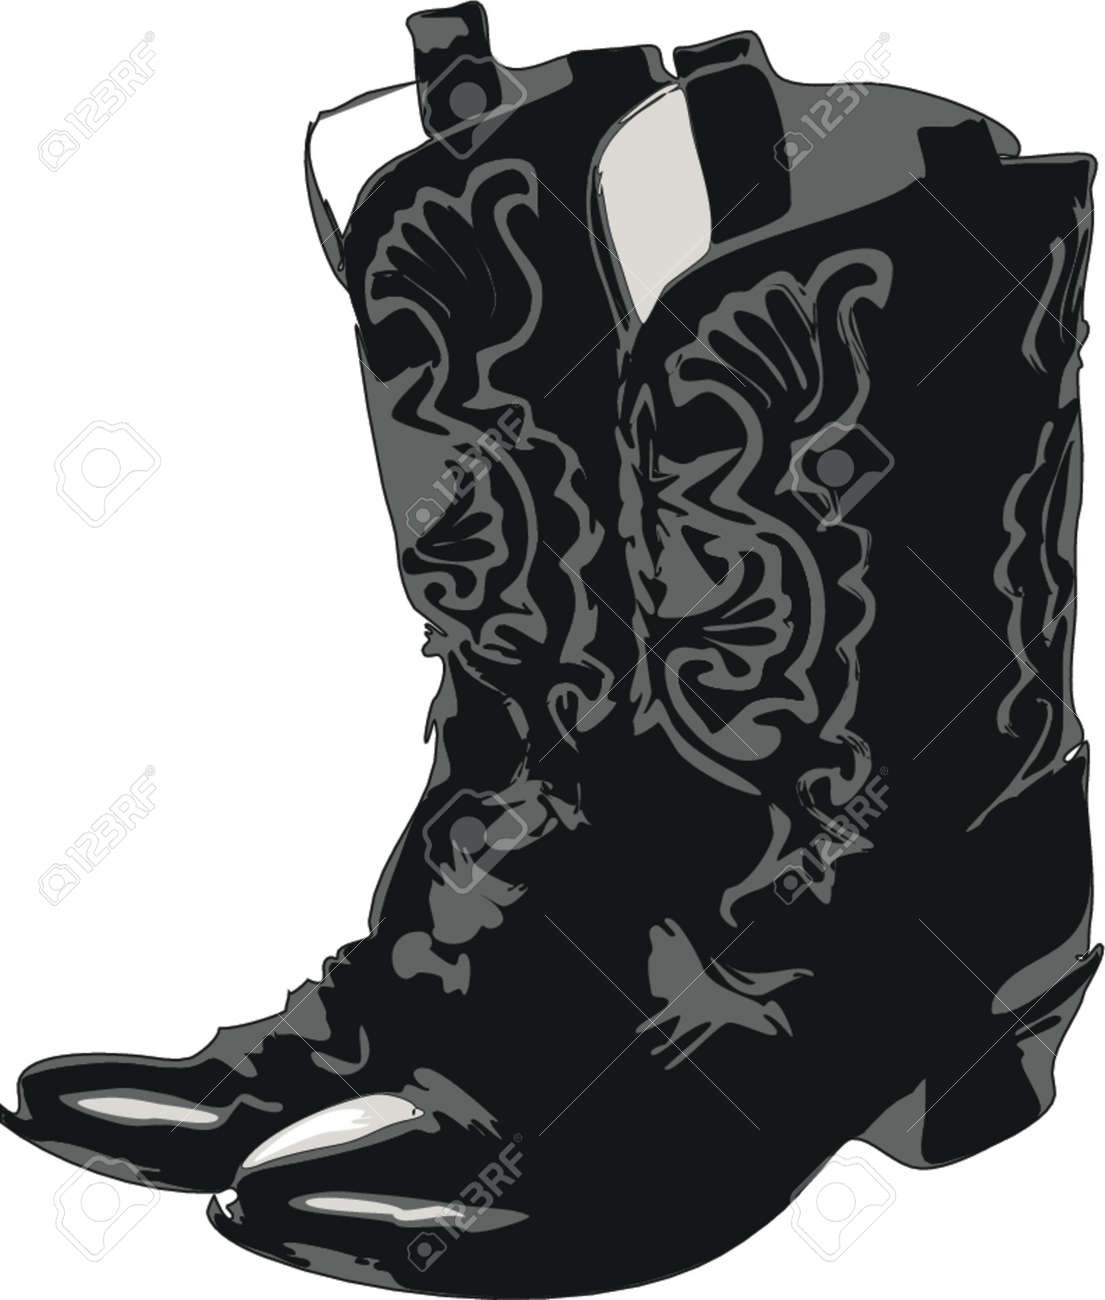 Cowboy Boots Royalty Free Cliparts, Vectors, And Stock Illustration ...